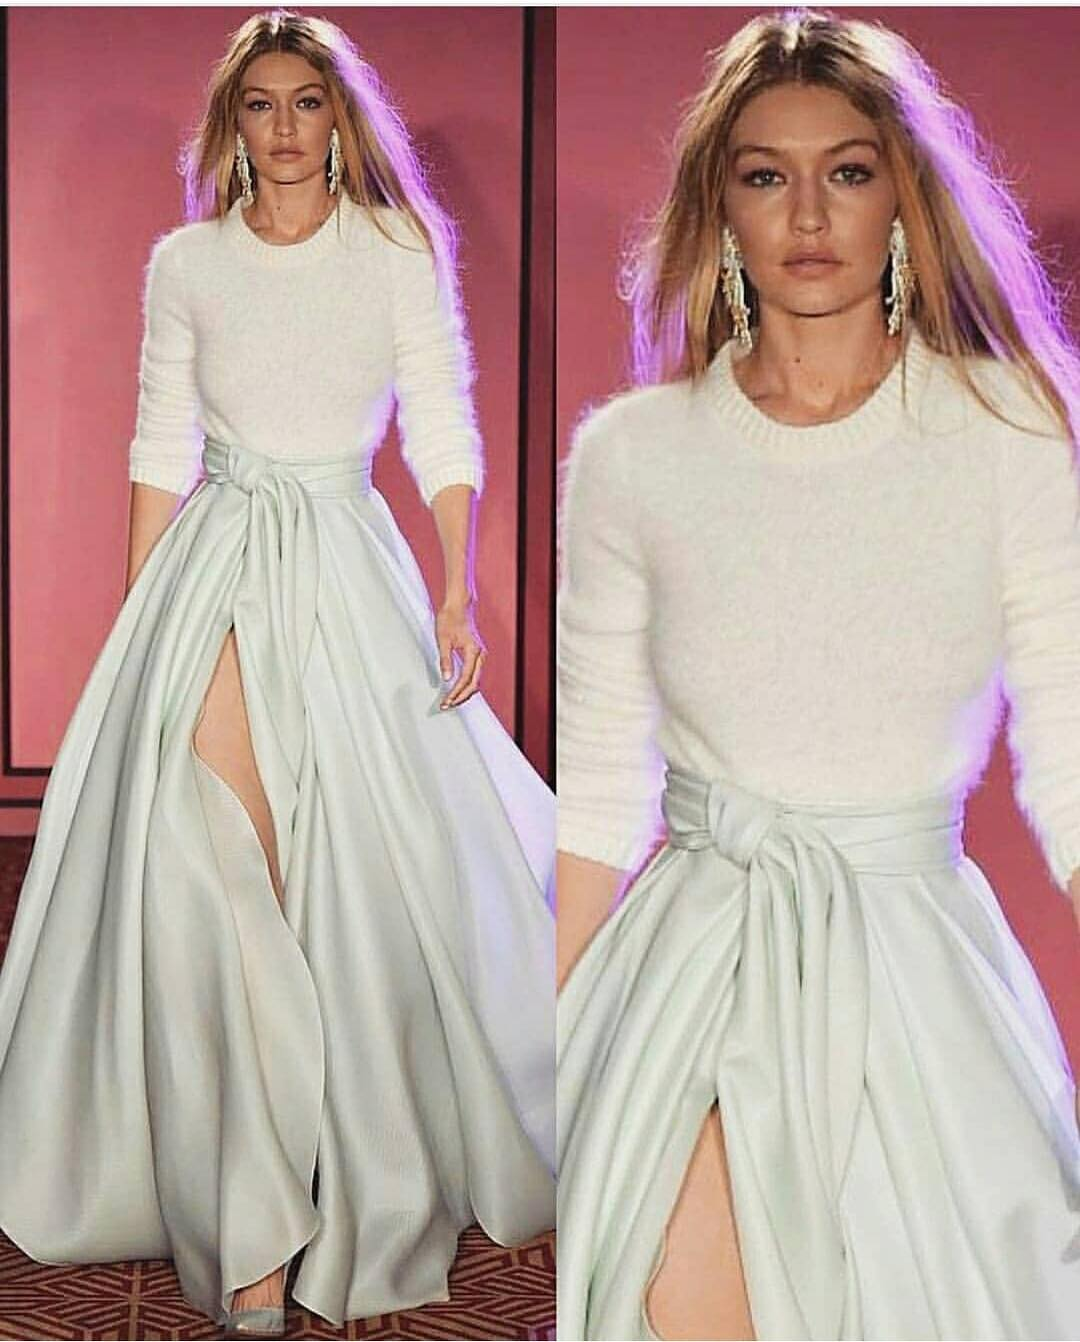 How To Style Mohair Sweater In White And Maxi Skirt This Fall 2019